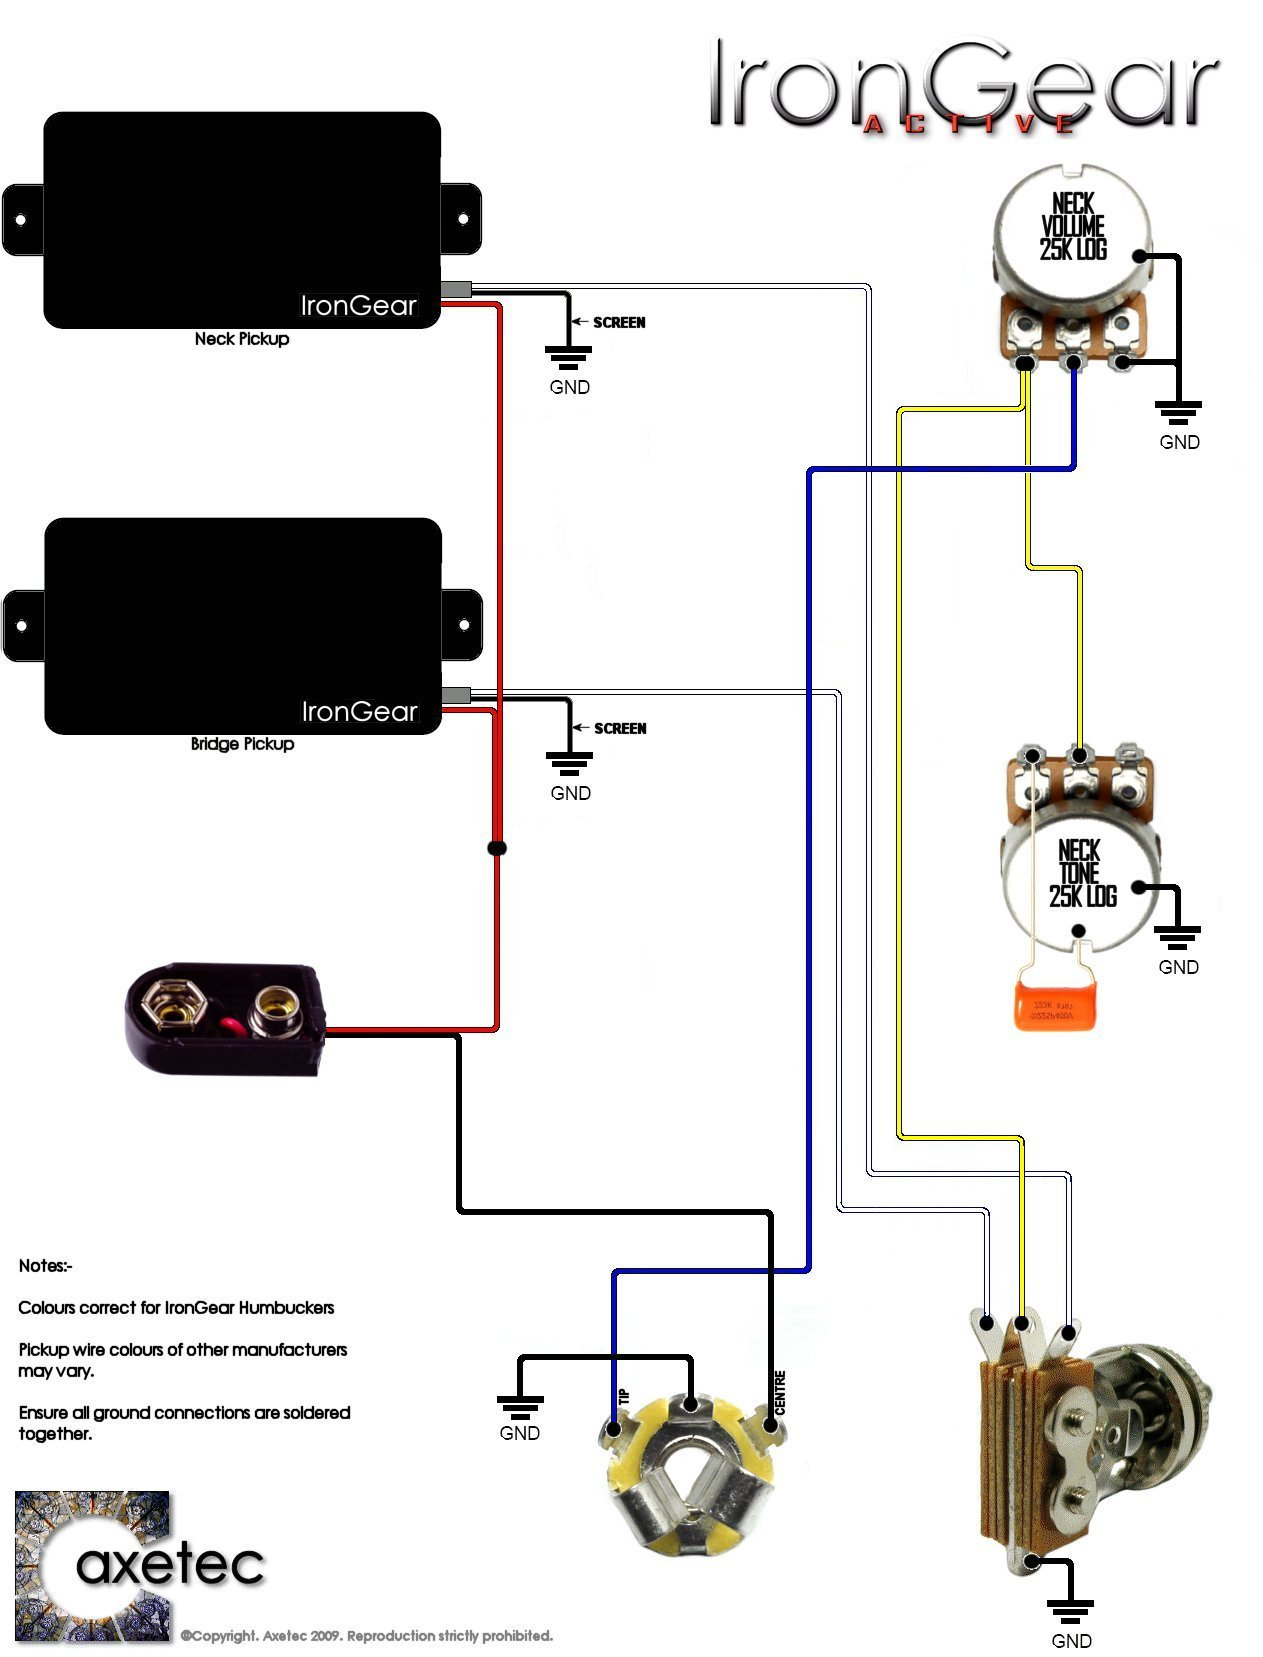 bass guitar pickup wiring diagram two wiring library Bill Nash Wiring Diagram irongear pickups wiring rh irongear co uk bass guitar pickup wiring diagram two humbucker wiring 2